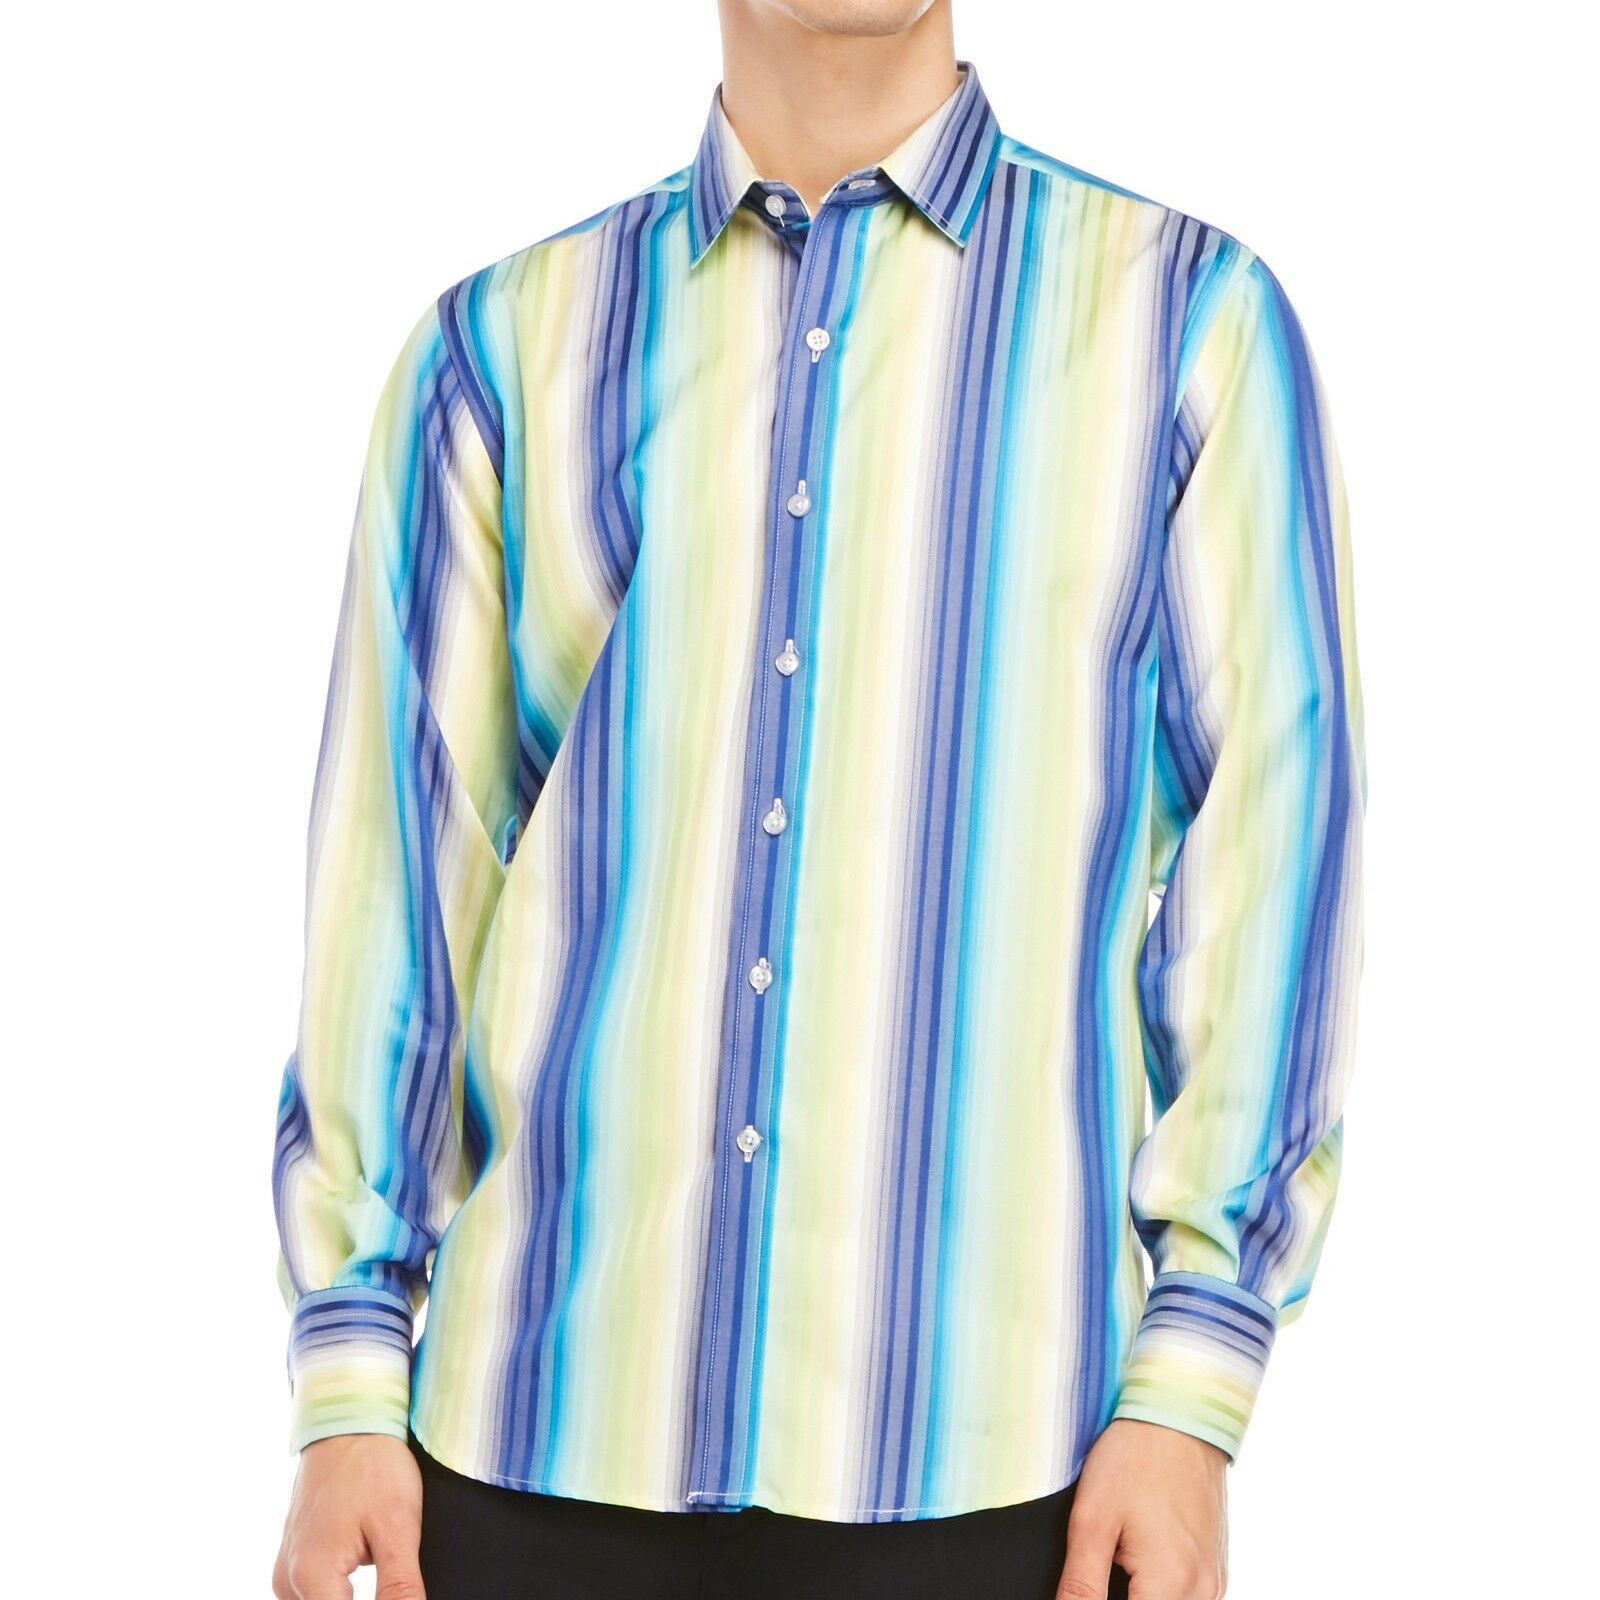 Robert Graham Men's Long Sleeve Chenworth Striped Button Front Shirt bluee L 2XL